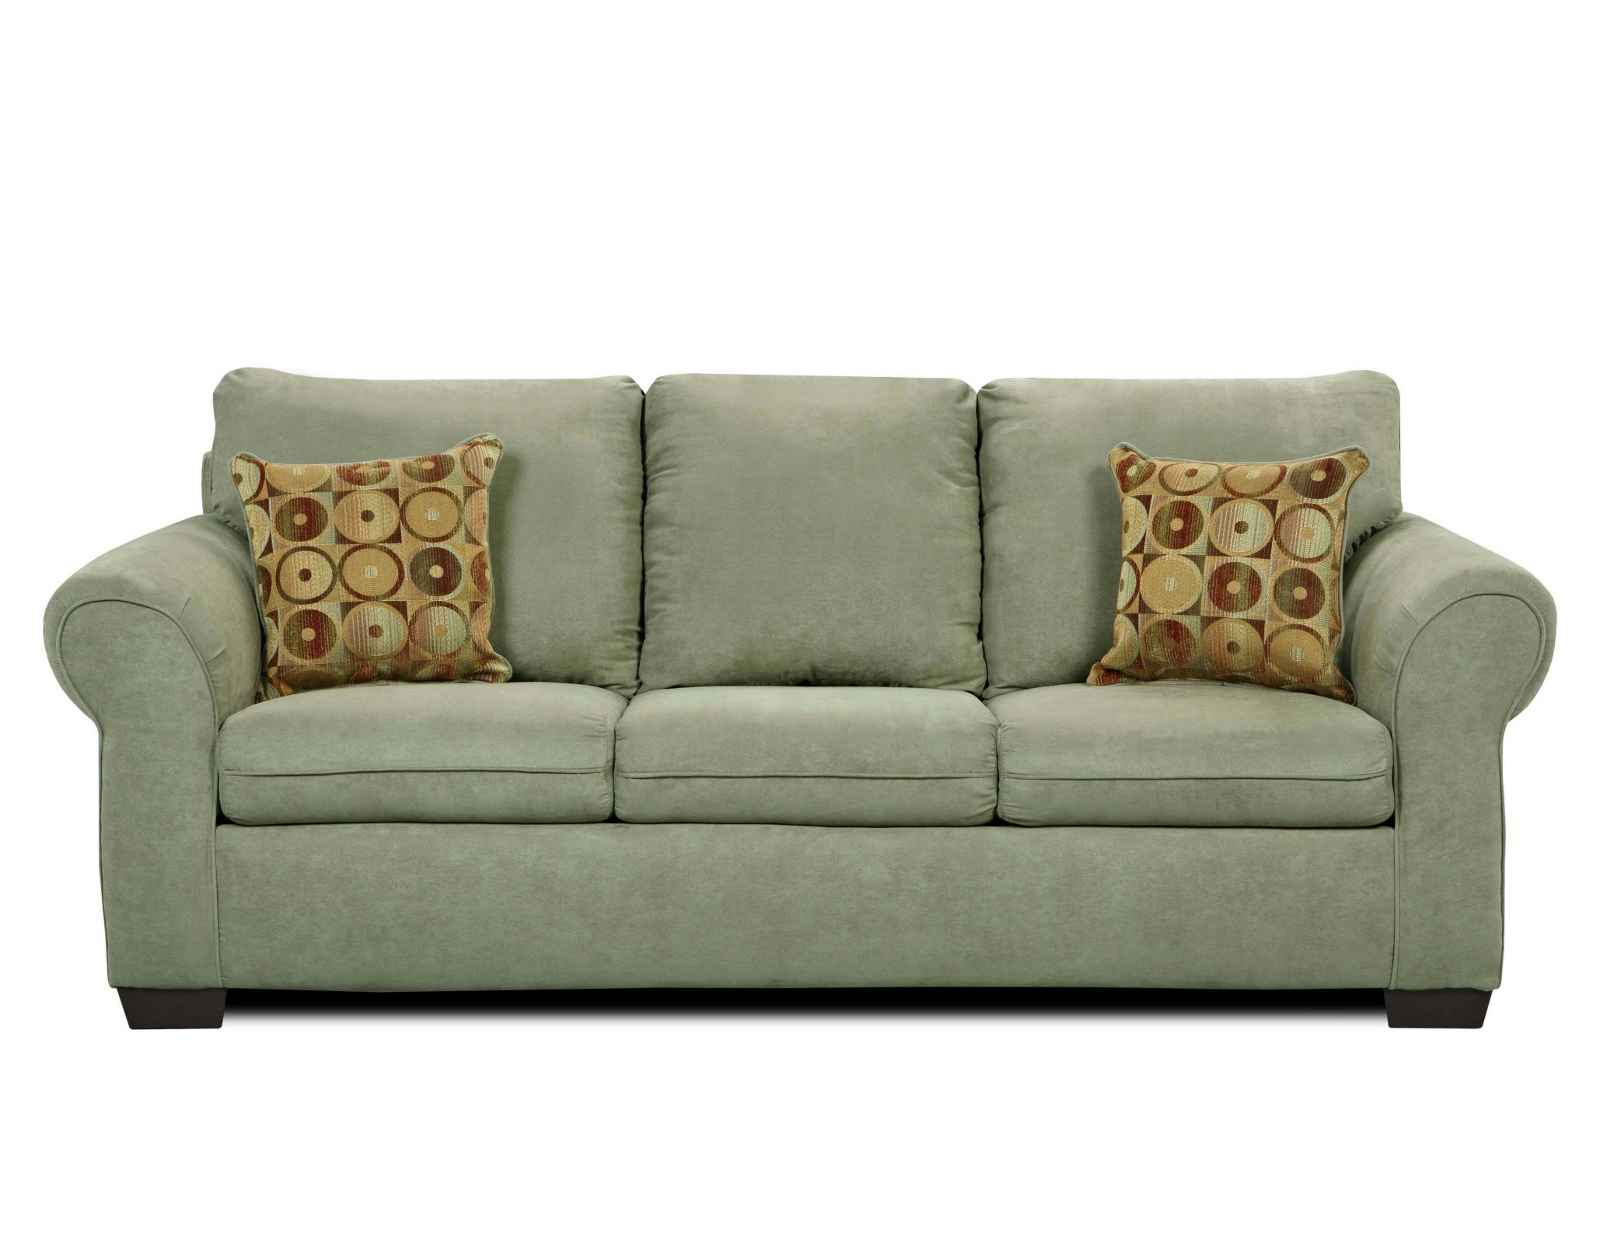 Cheap sofas for sale feel the home for Affordable sofas for sale